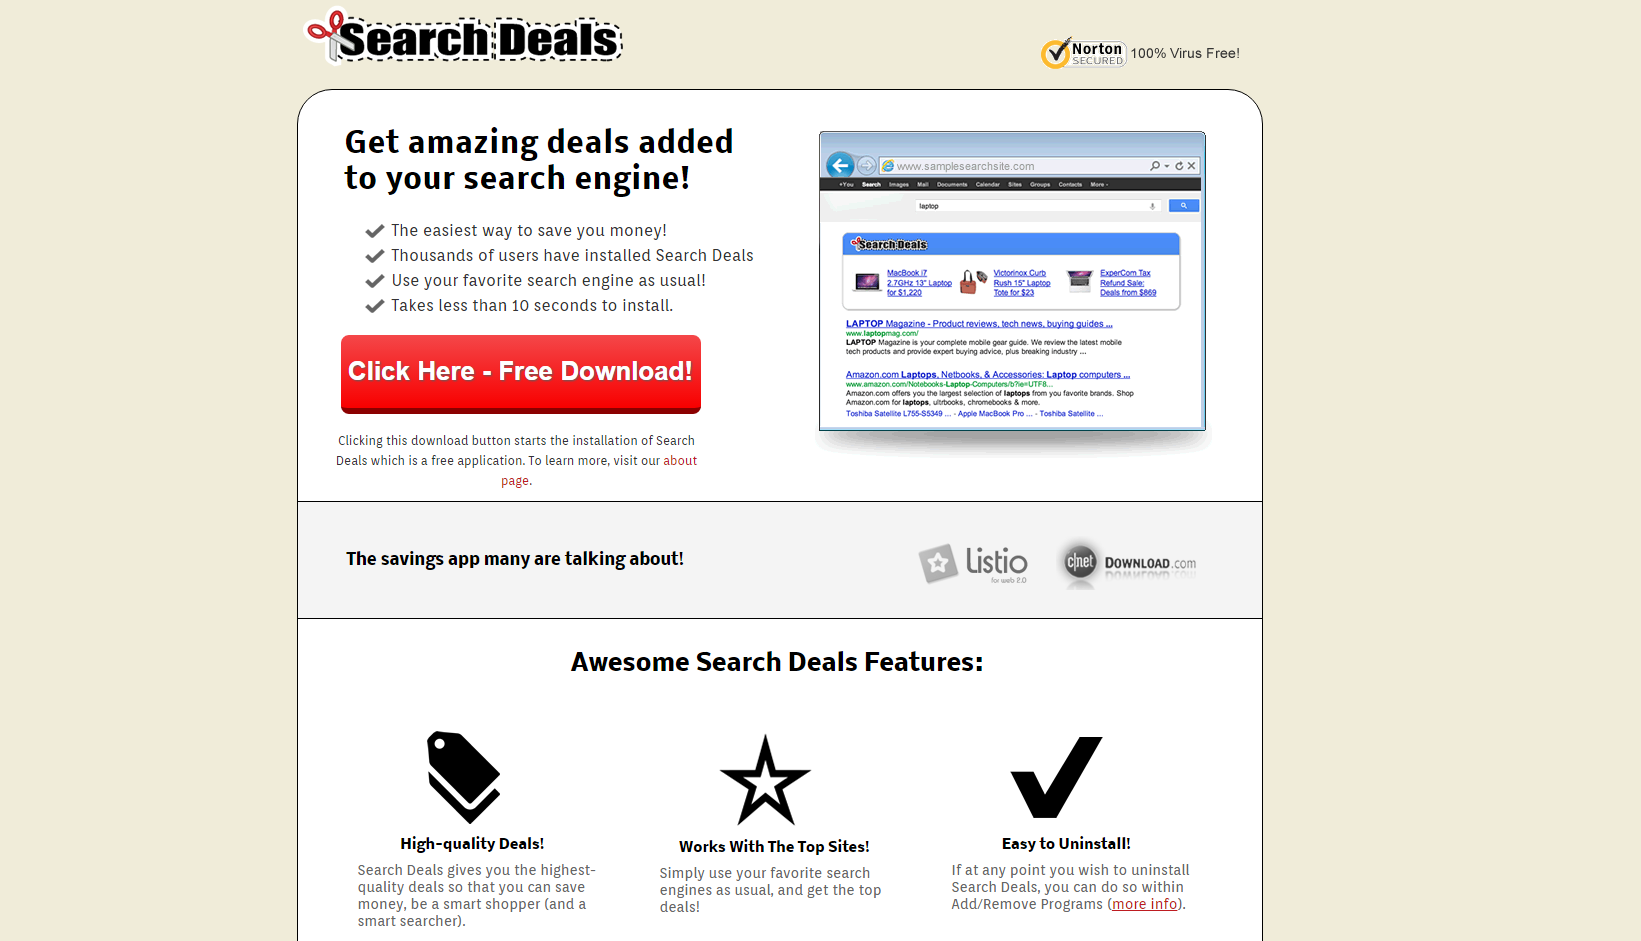 Search Deals ads